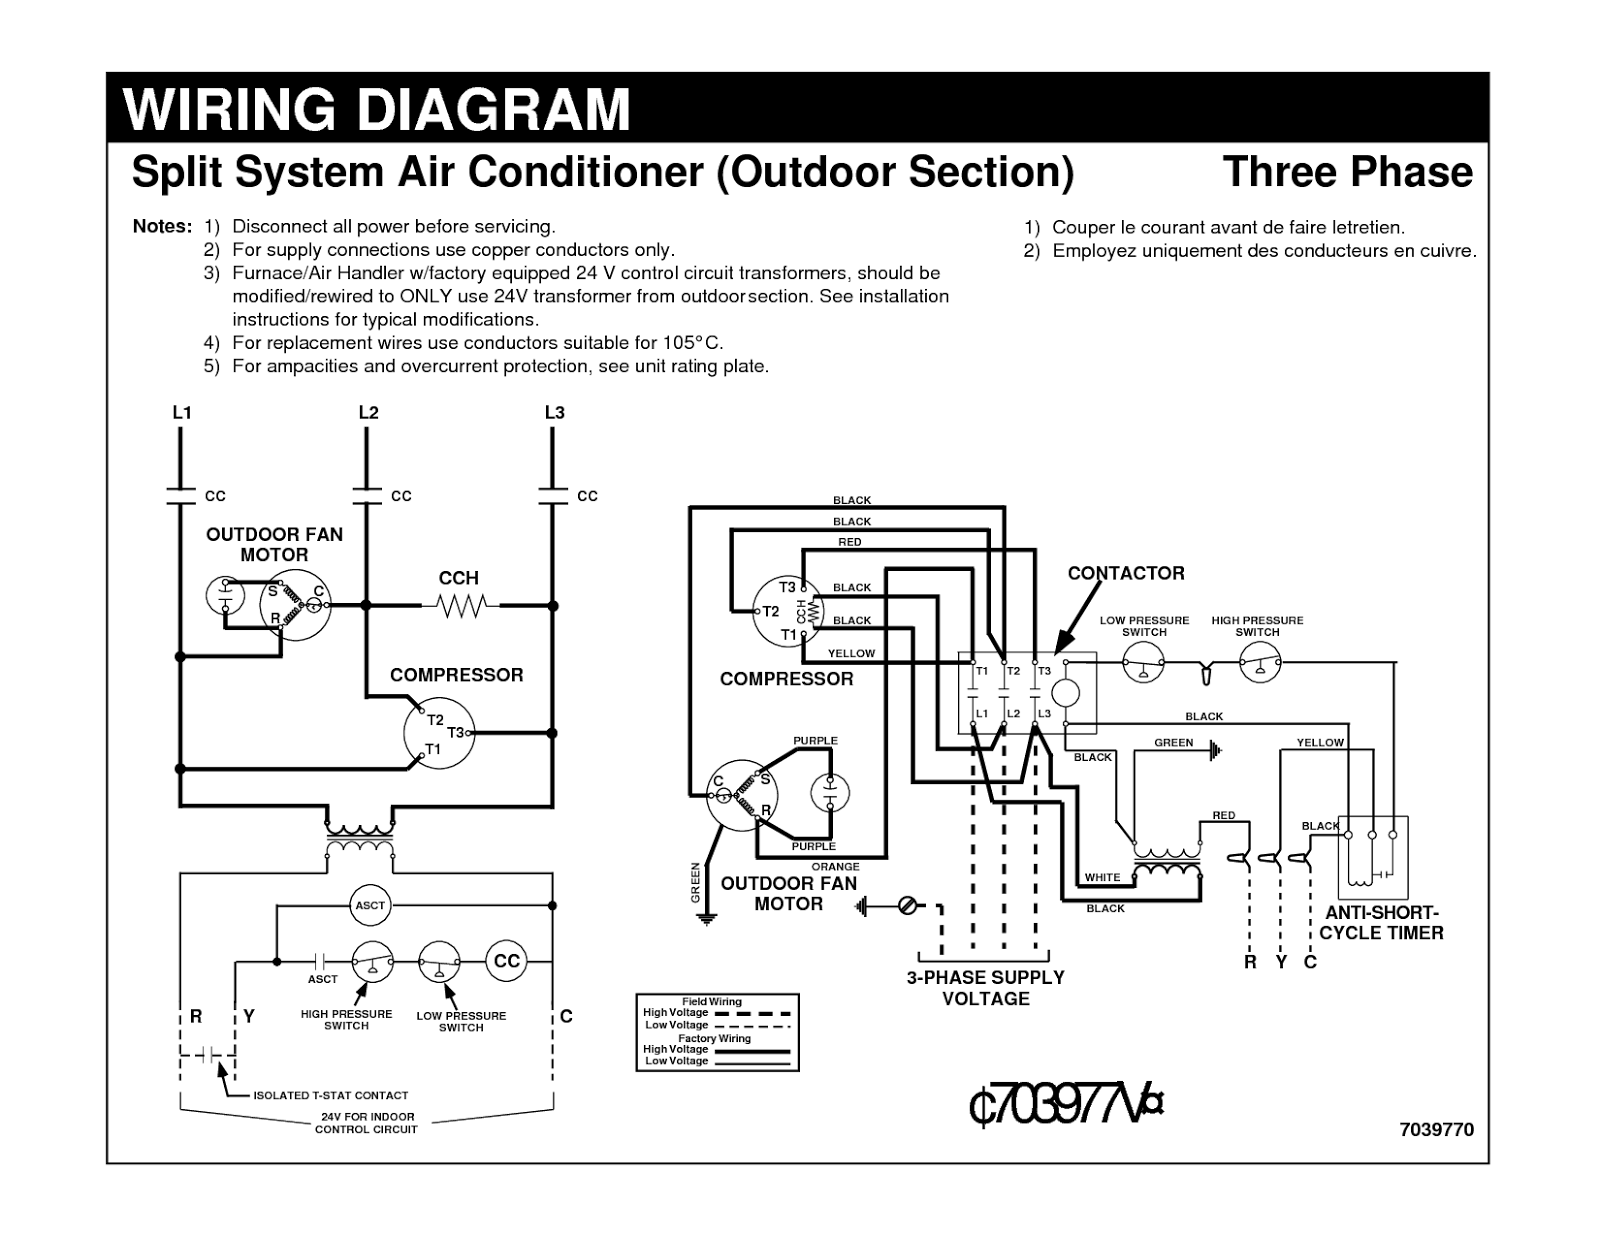 Electrical Wiring Diagrams For Air Conditioning Systems Part One Panel Diagram On 12 Volt Solar Motion Light Fig1